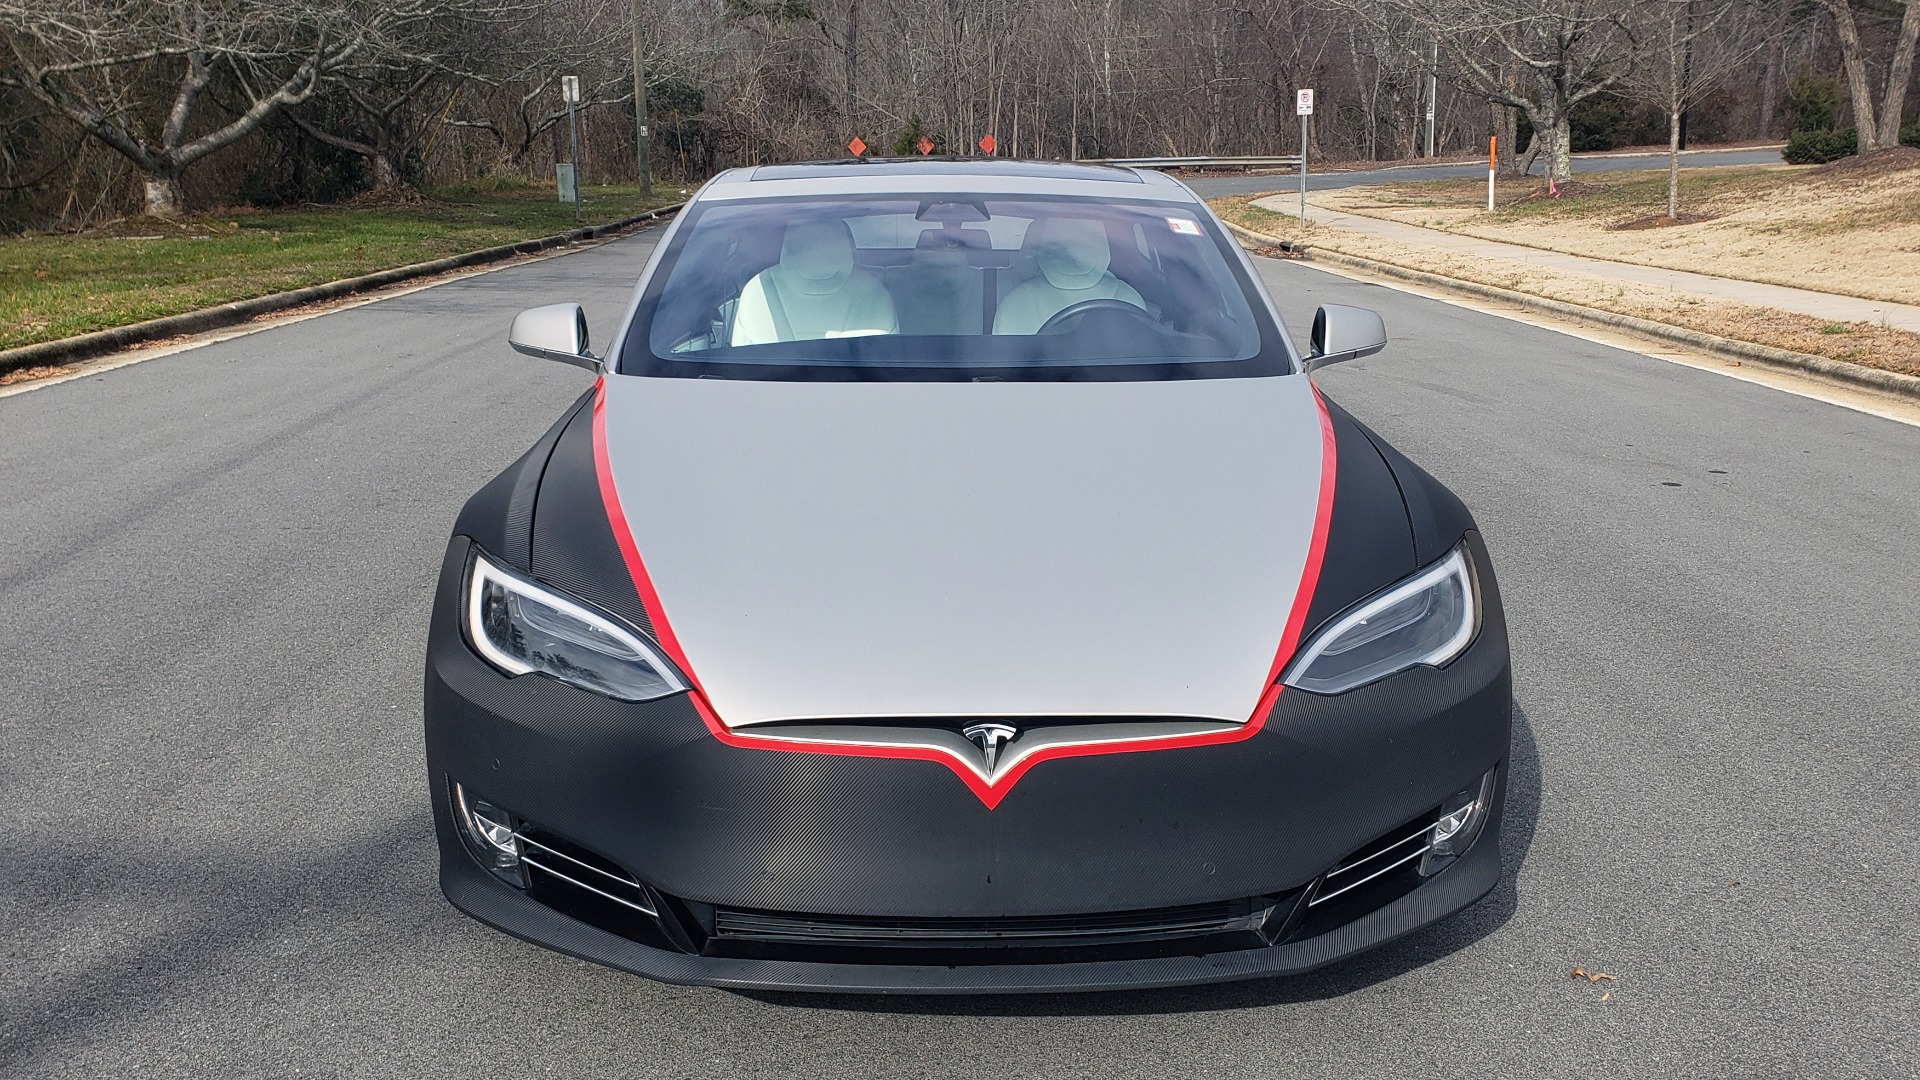 Used 2017 Tesla MODEL S P100D LUDICROUS PERF / PREM / TECH / AUTO PILOT for sale Sold at Formula Imports in Charlotte NC 28227 25